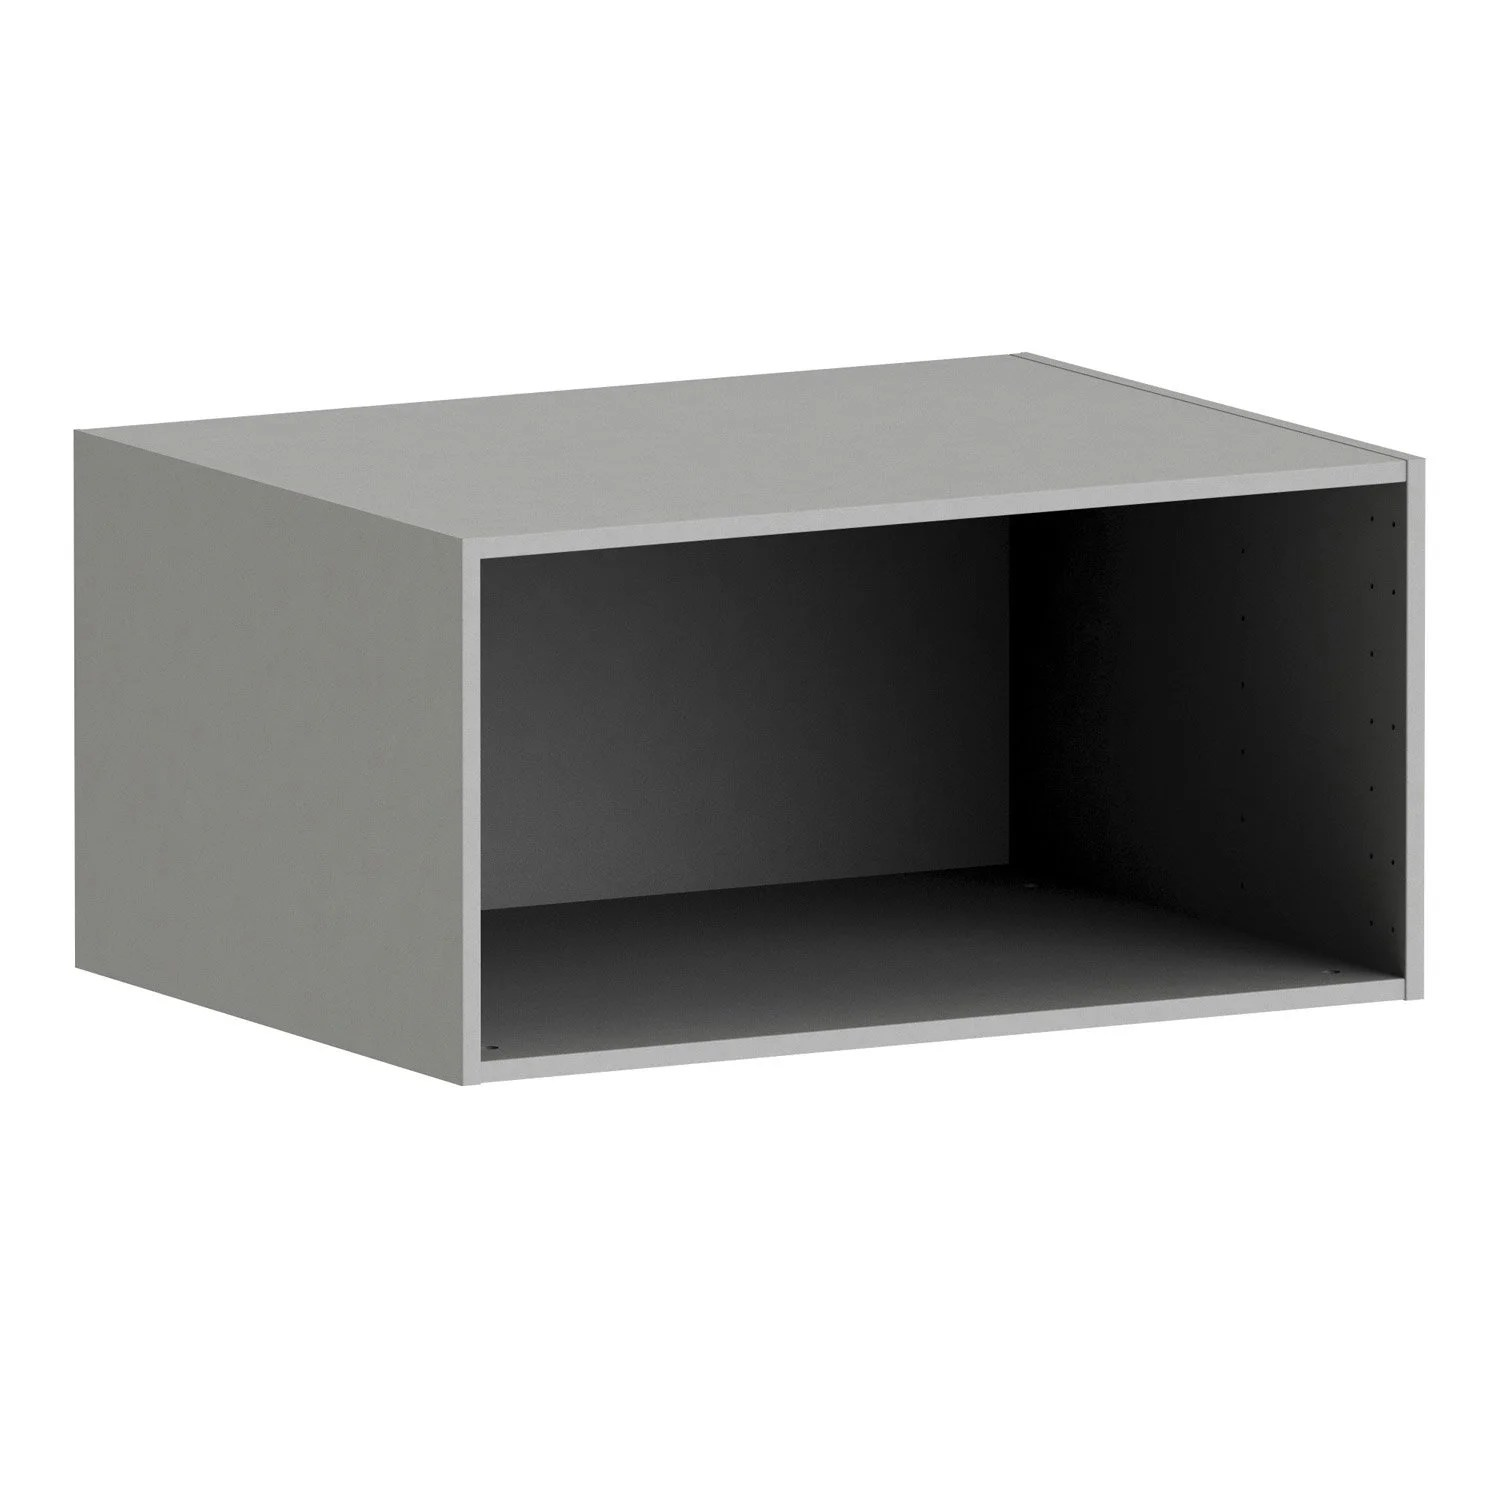 Caisson Spaceo Home Leroy Merlin Caisson Spaceo Home 40 X 80 X 60 Cm Anthracite Leroy Merlin